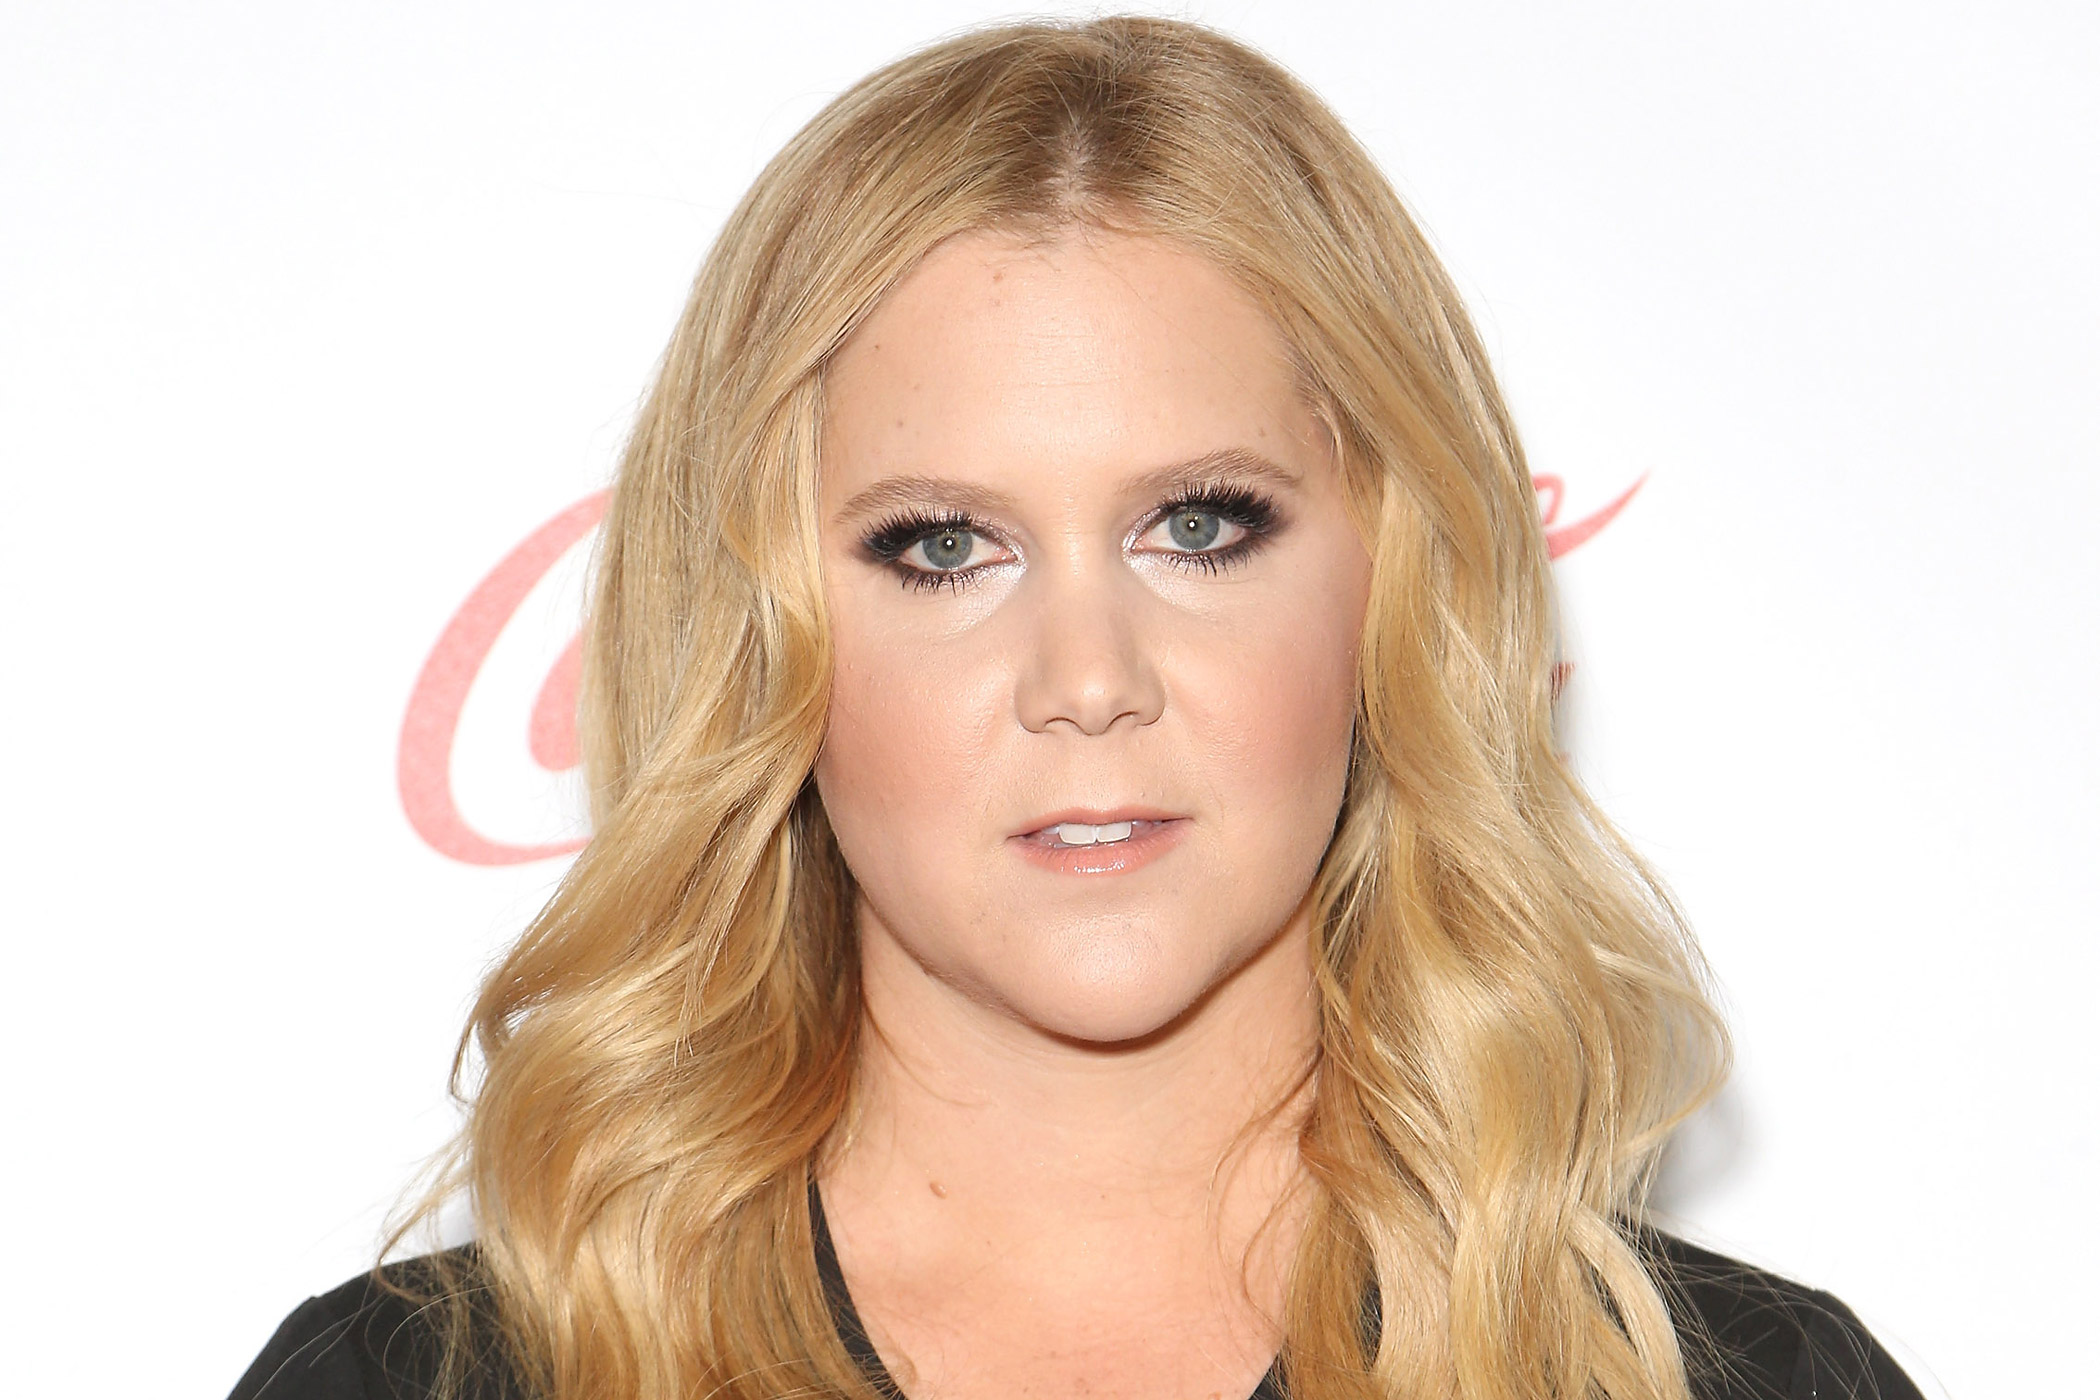 Amy Schumer attends the 2015 Big Screen Achievement Awards during 2015 CinemaCon at OMNIA Nightclub at Caesars Palace on April 23, 2015 in Las Vegas, NV.